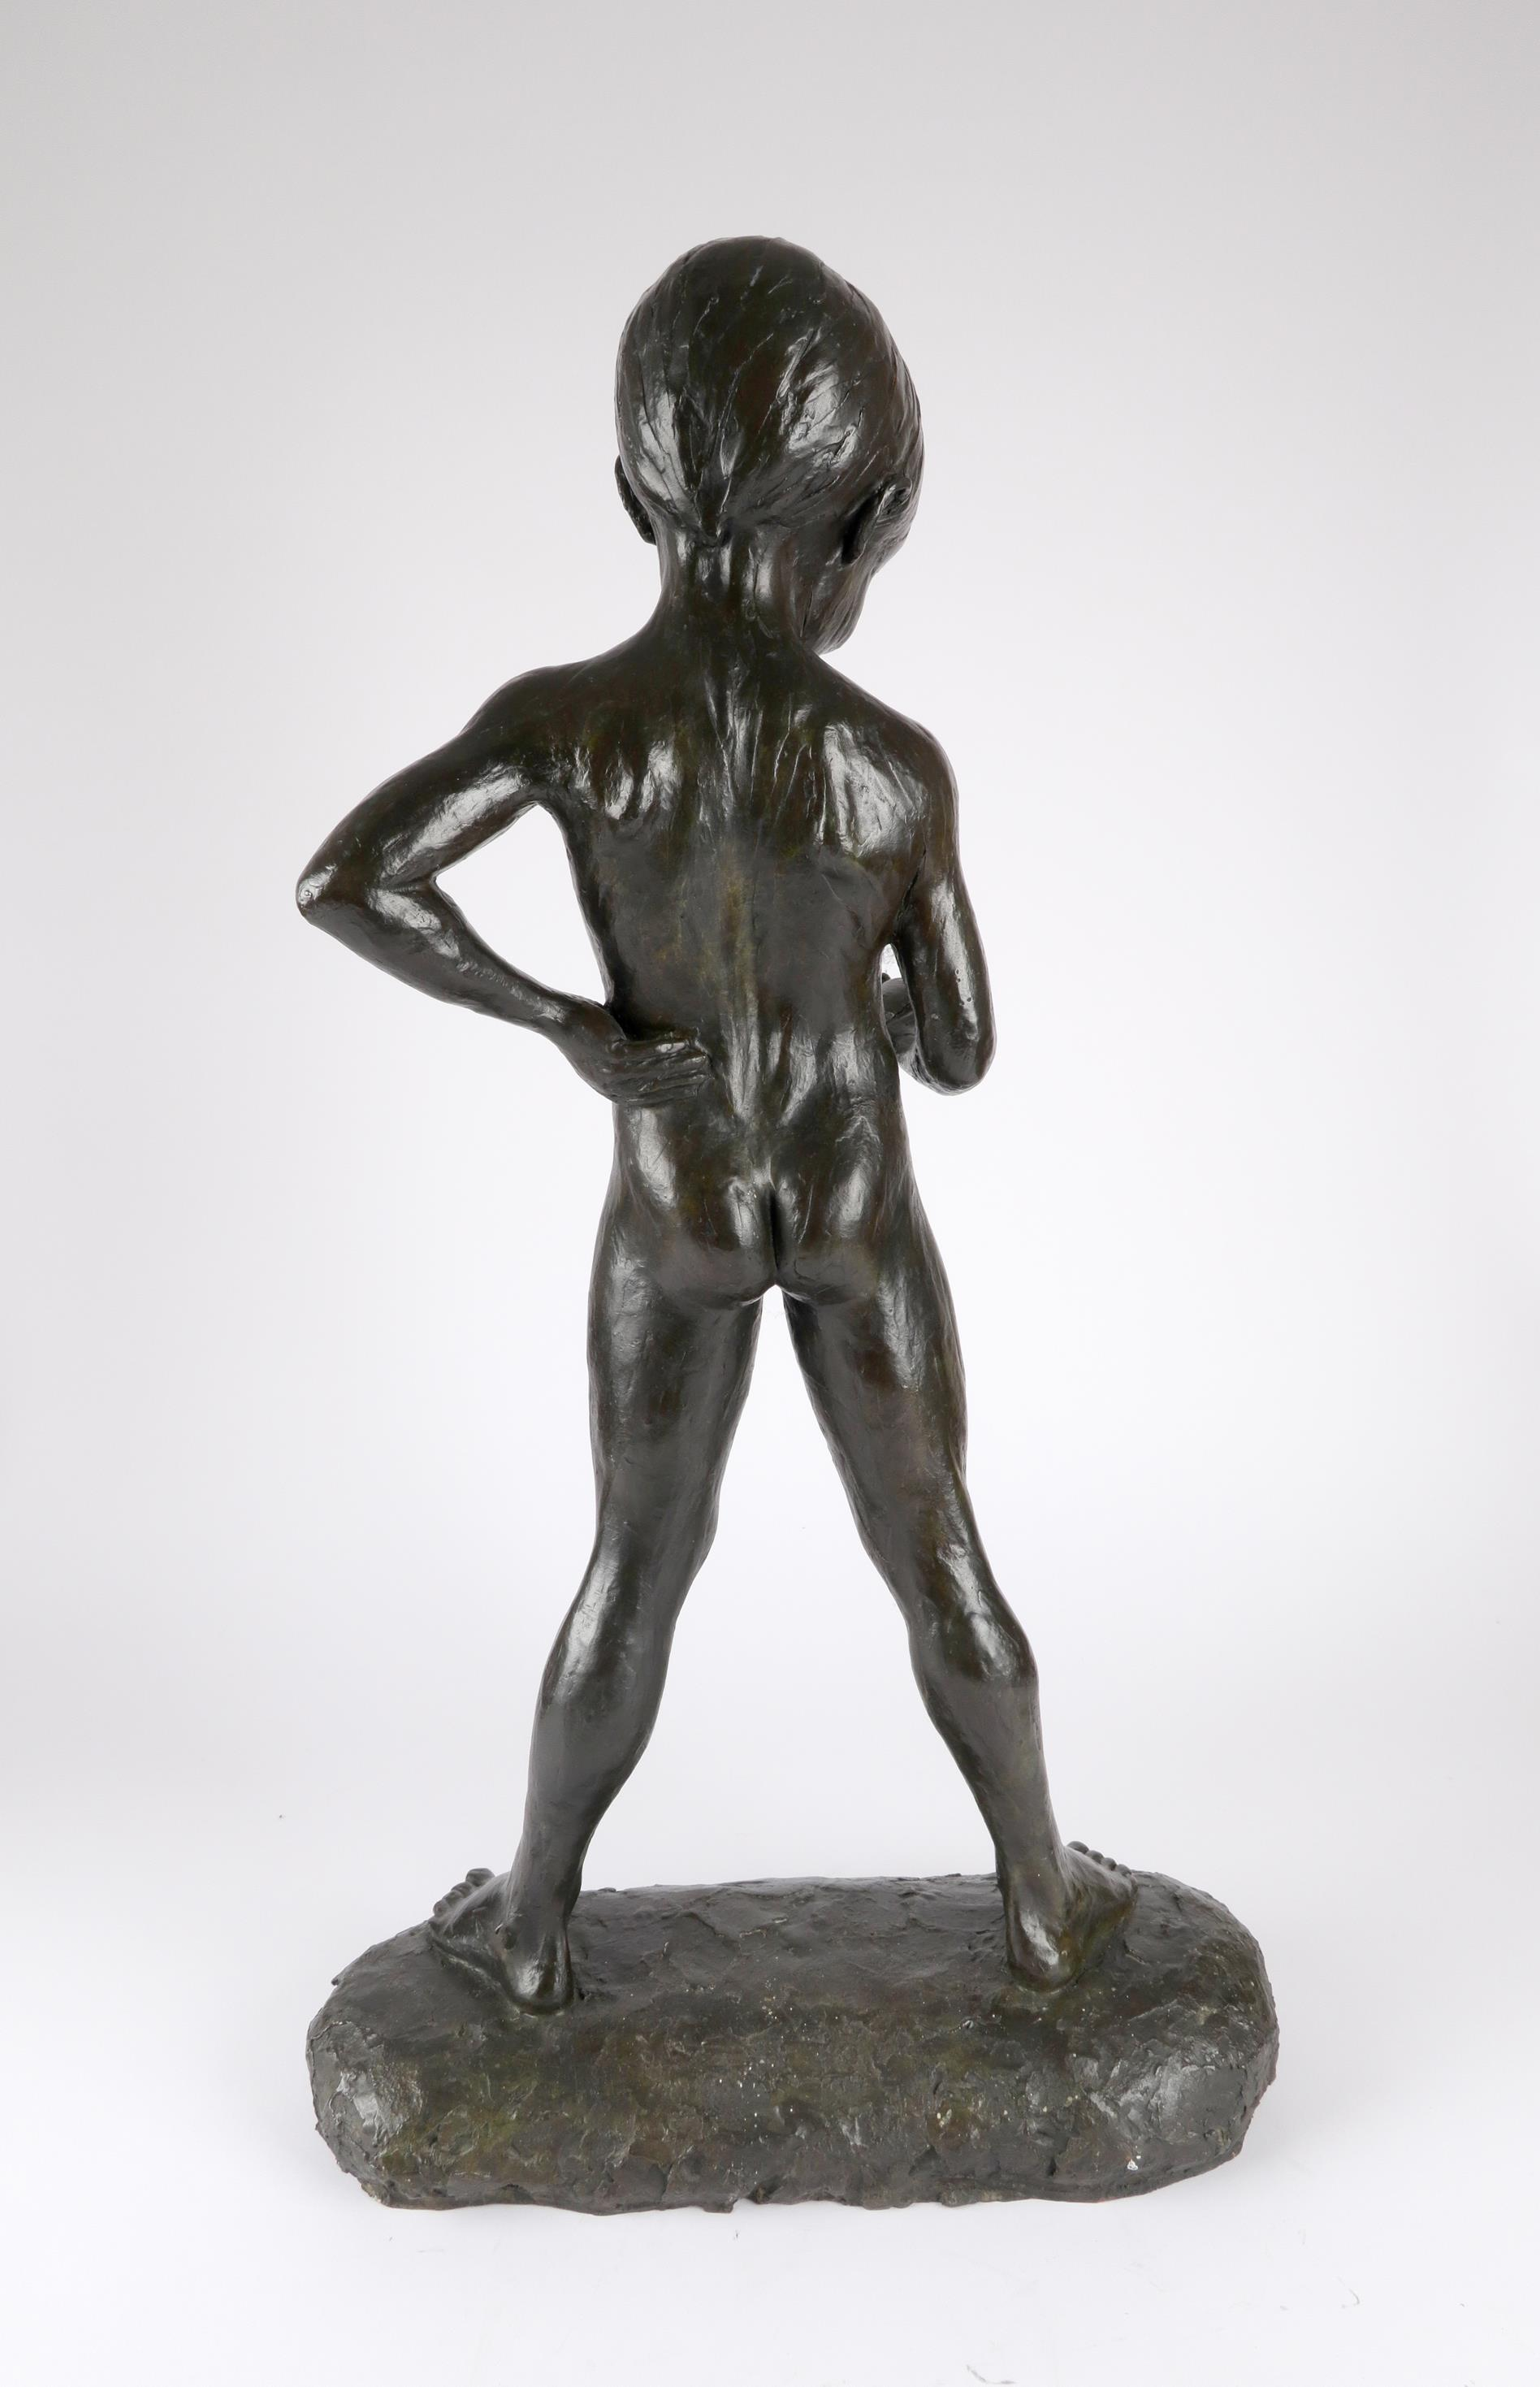 ‡Enzo Plazzotta (Italian 1921-1991) The fisherboy Stamped with signature and number Plazzotta/3/9, - Image 3 of 4